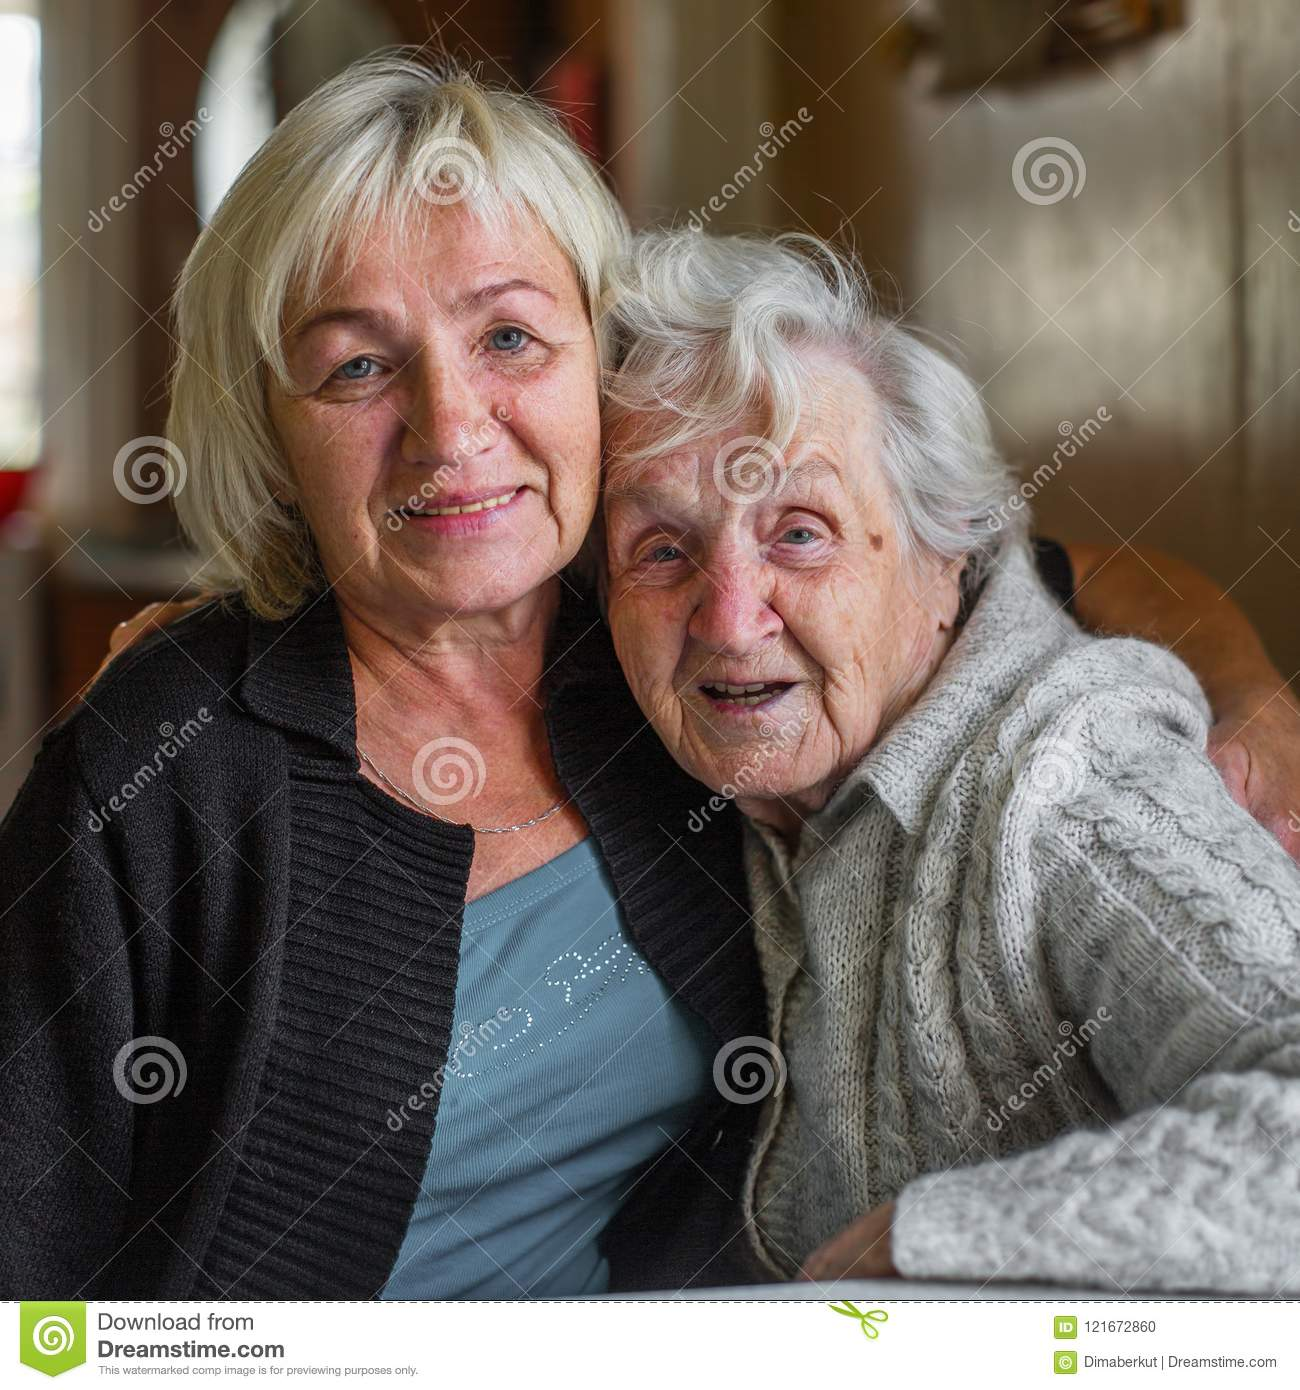 Old woman love